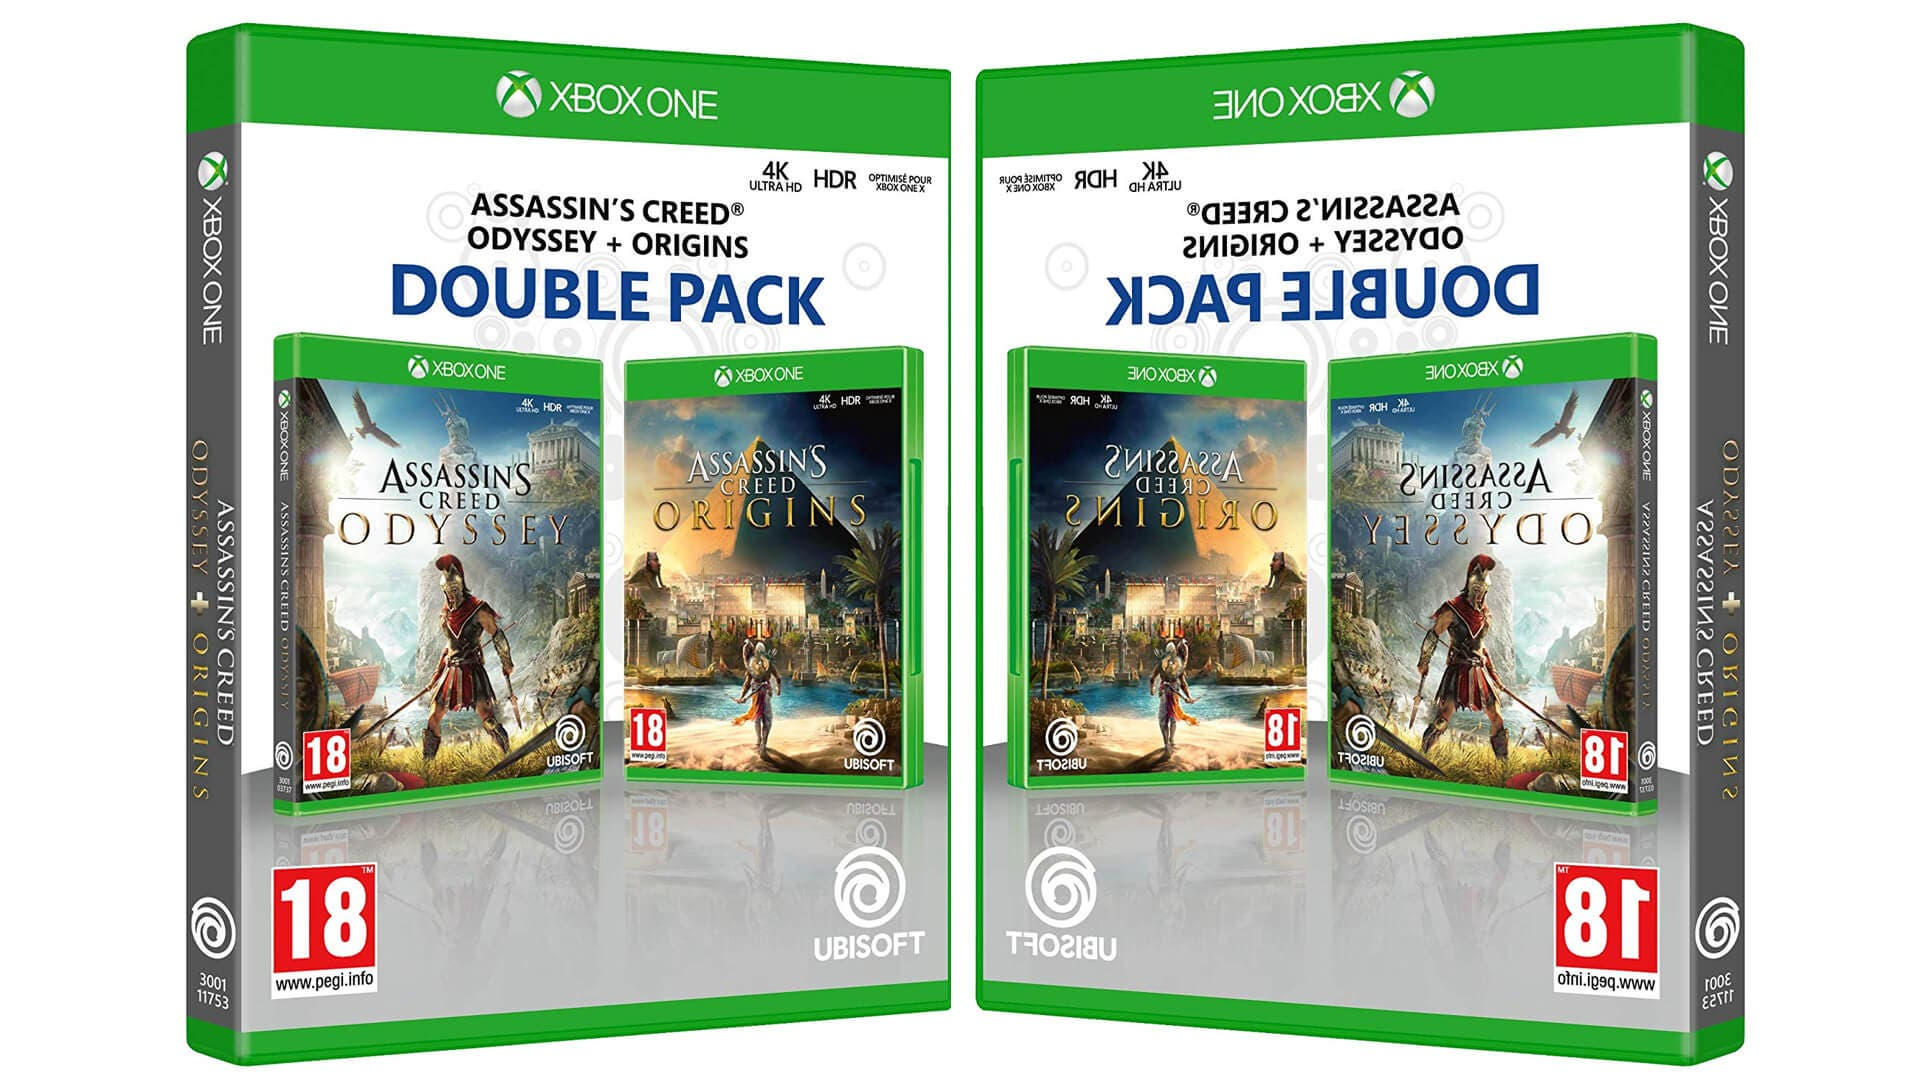 Gran oferta de Doble Pack Assassin's Creed Origins + Odyssey para Xbox One 4